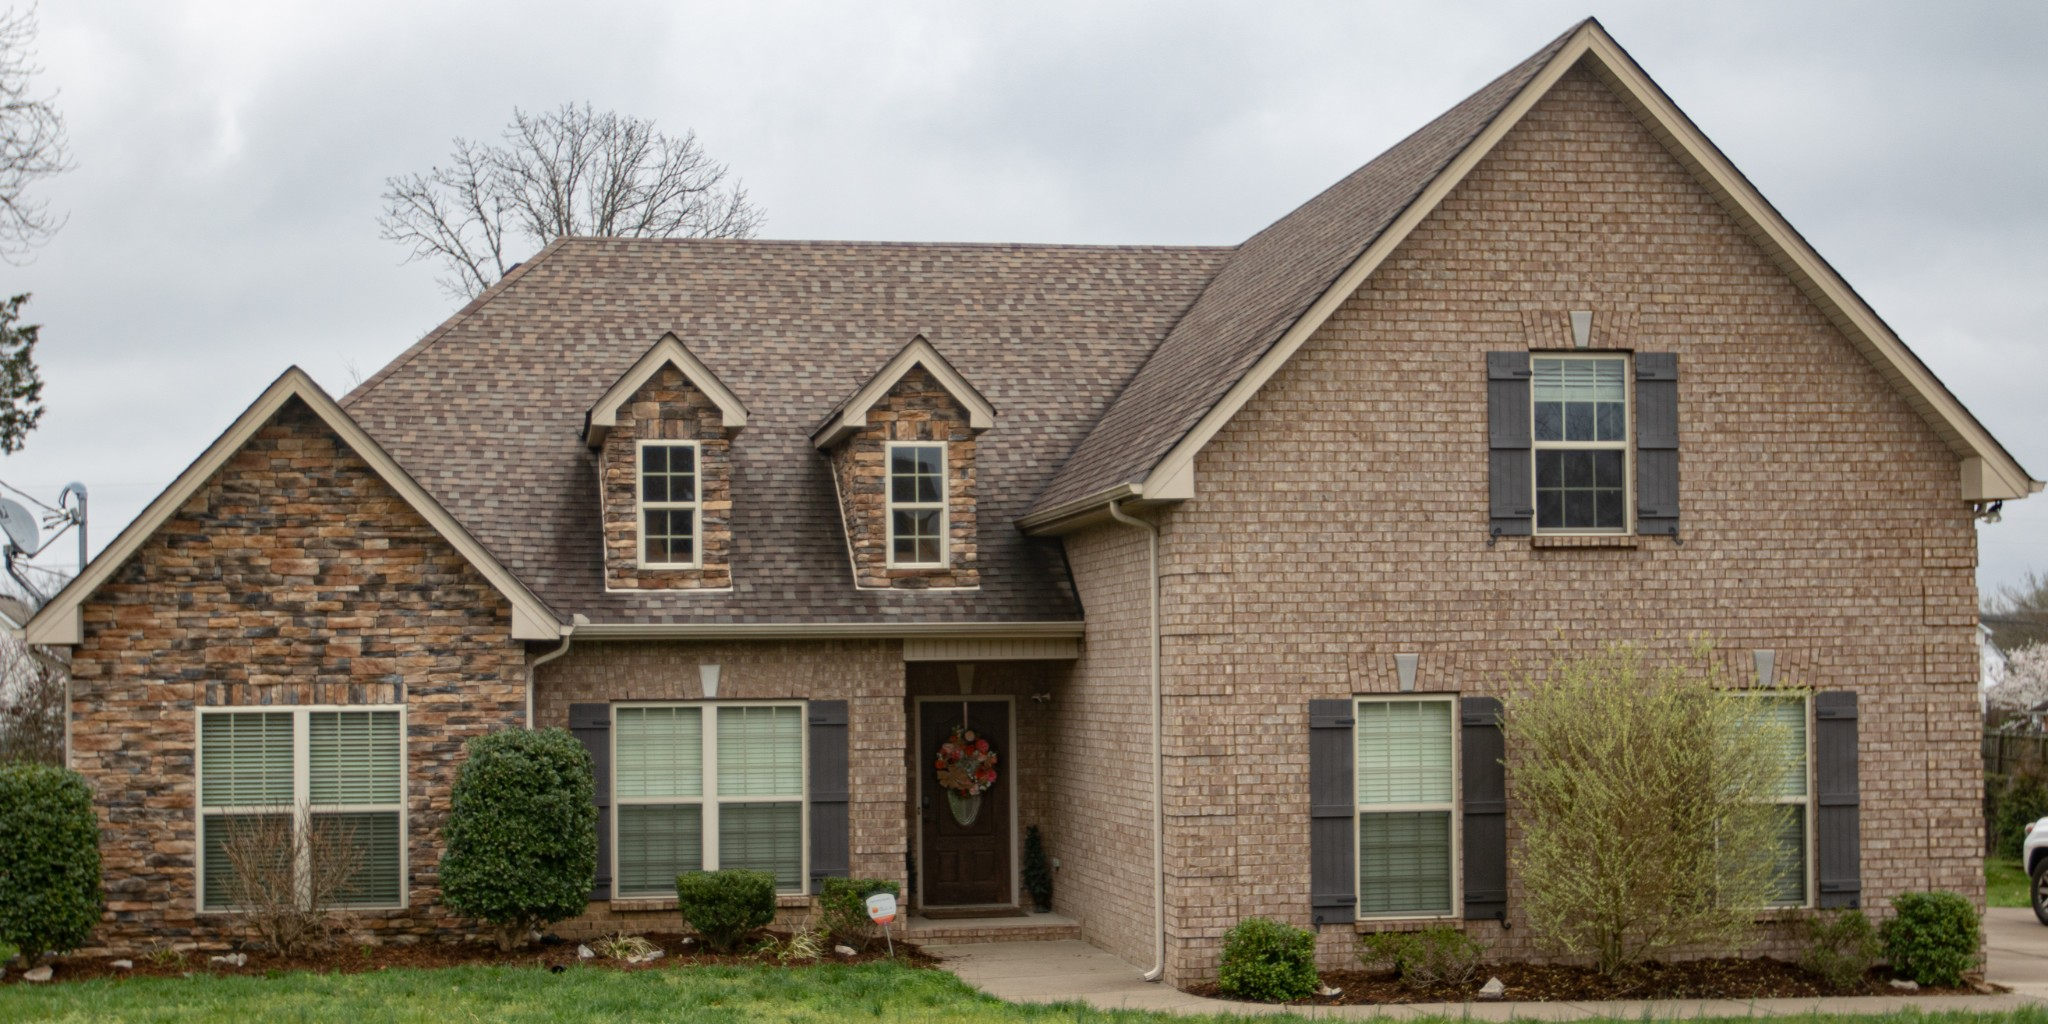 1124 Rivercrest Dr Property Photo - Murfreesboro, TN real estate listing